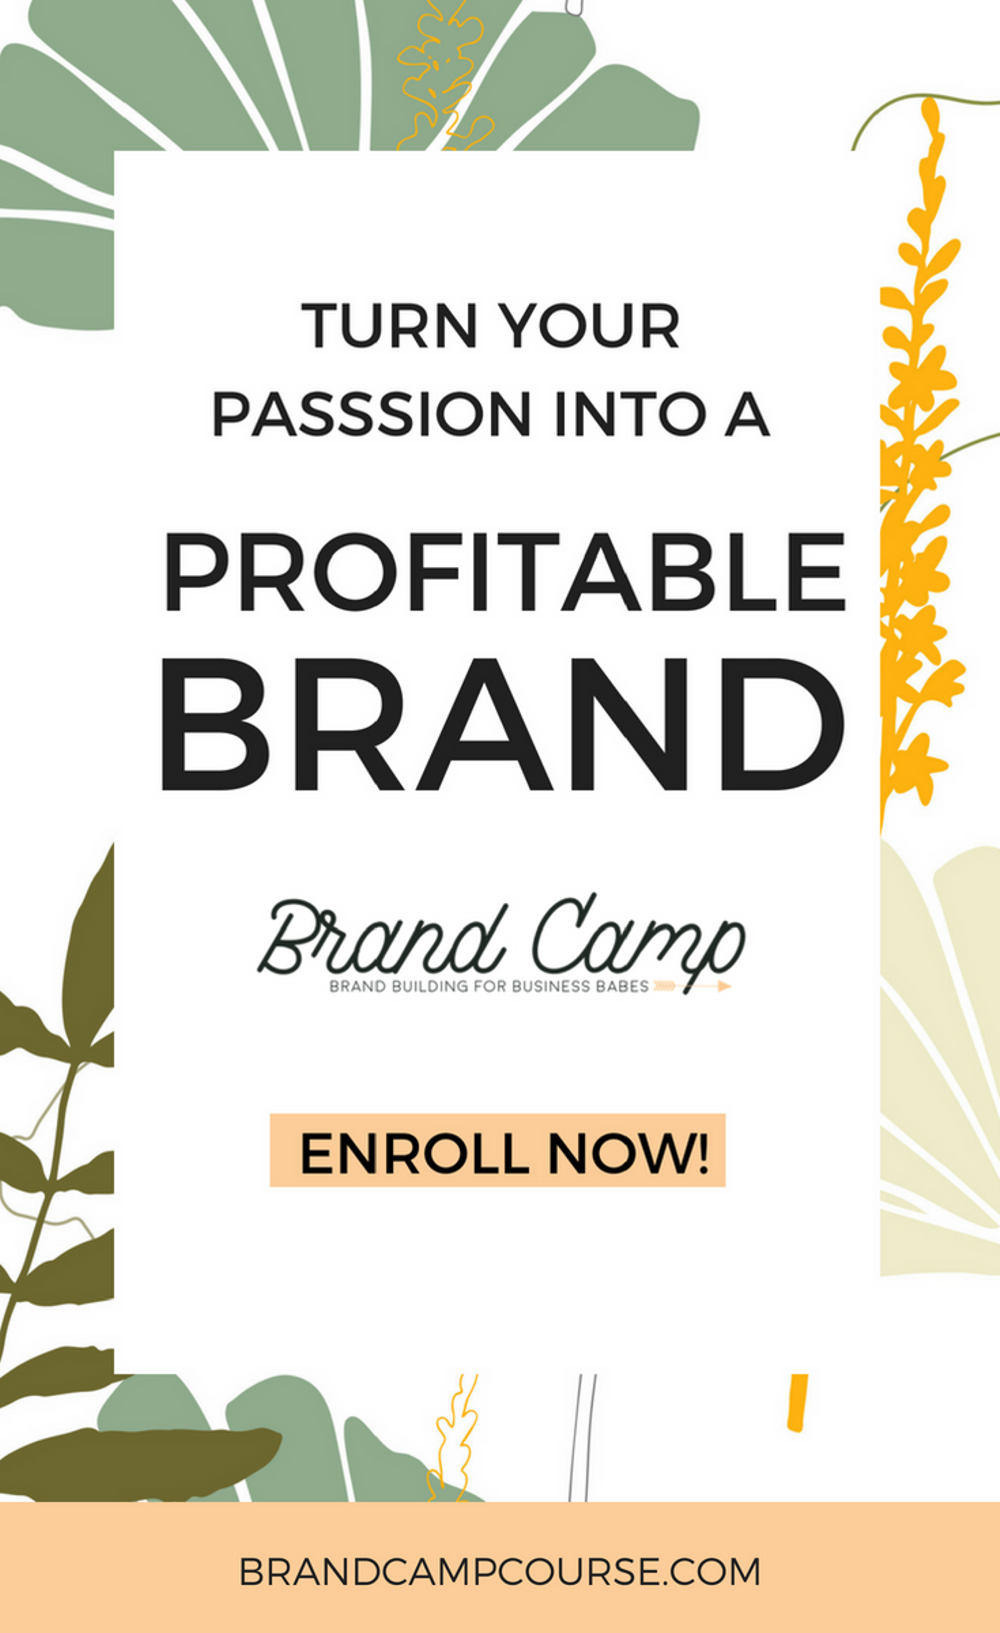 Brand Camp gives women the roadmap for building a business fueled with passion, purpose, and profit. You'll learn how to create a rock solid brand strategy that sets you up for long-term success. #marketing #womeninbusiness #brand #entrepreneur #business